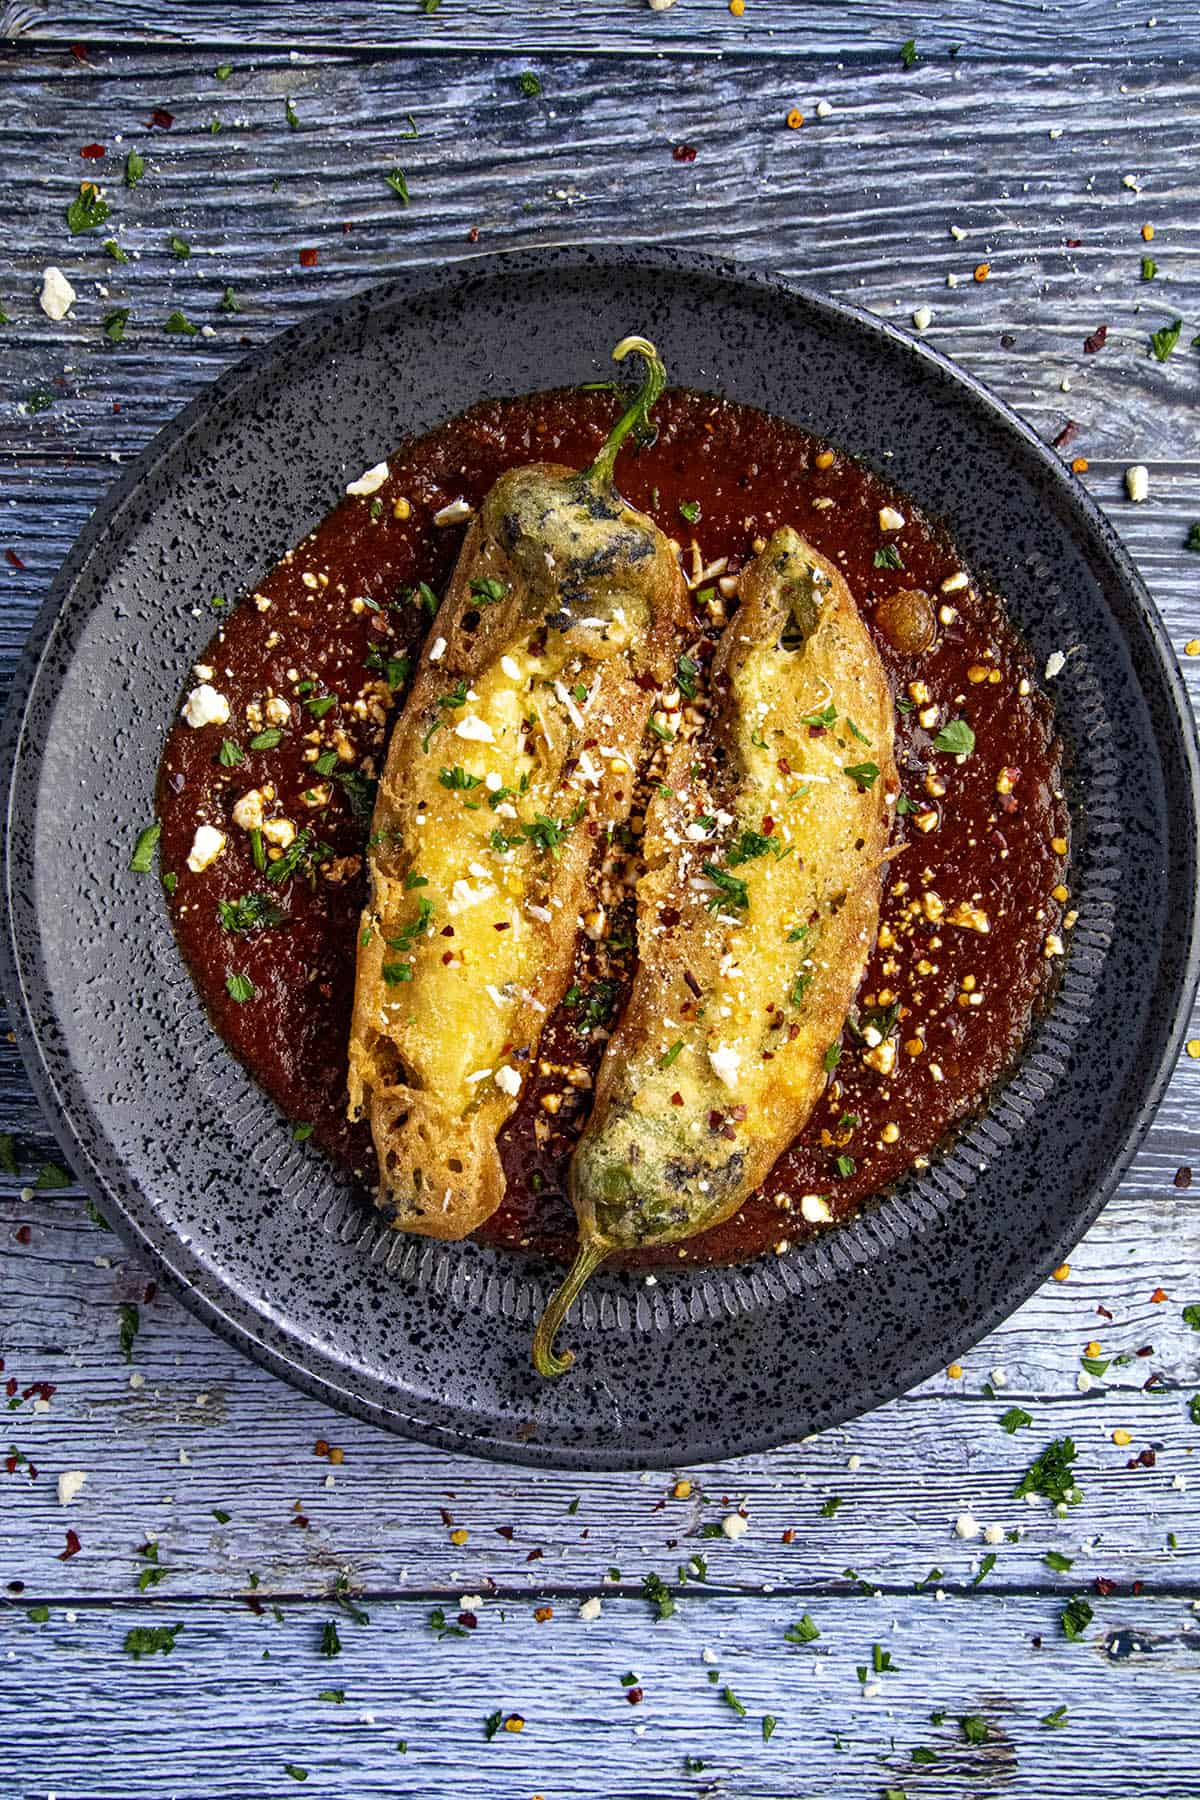 Two Chiles Rellenos on a plate with salsa roja (red sauce)